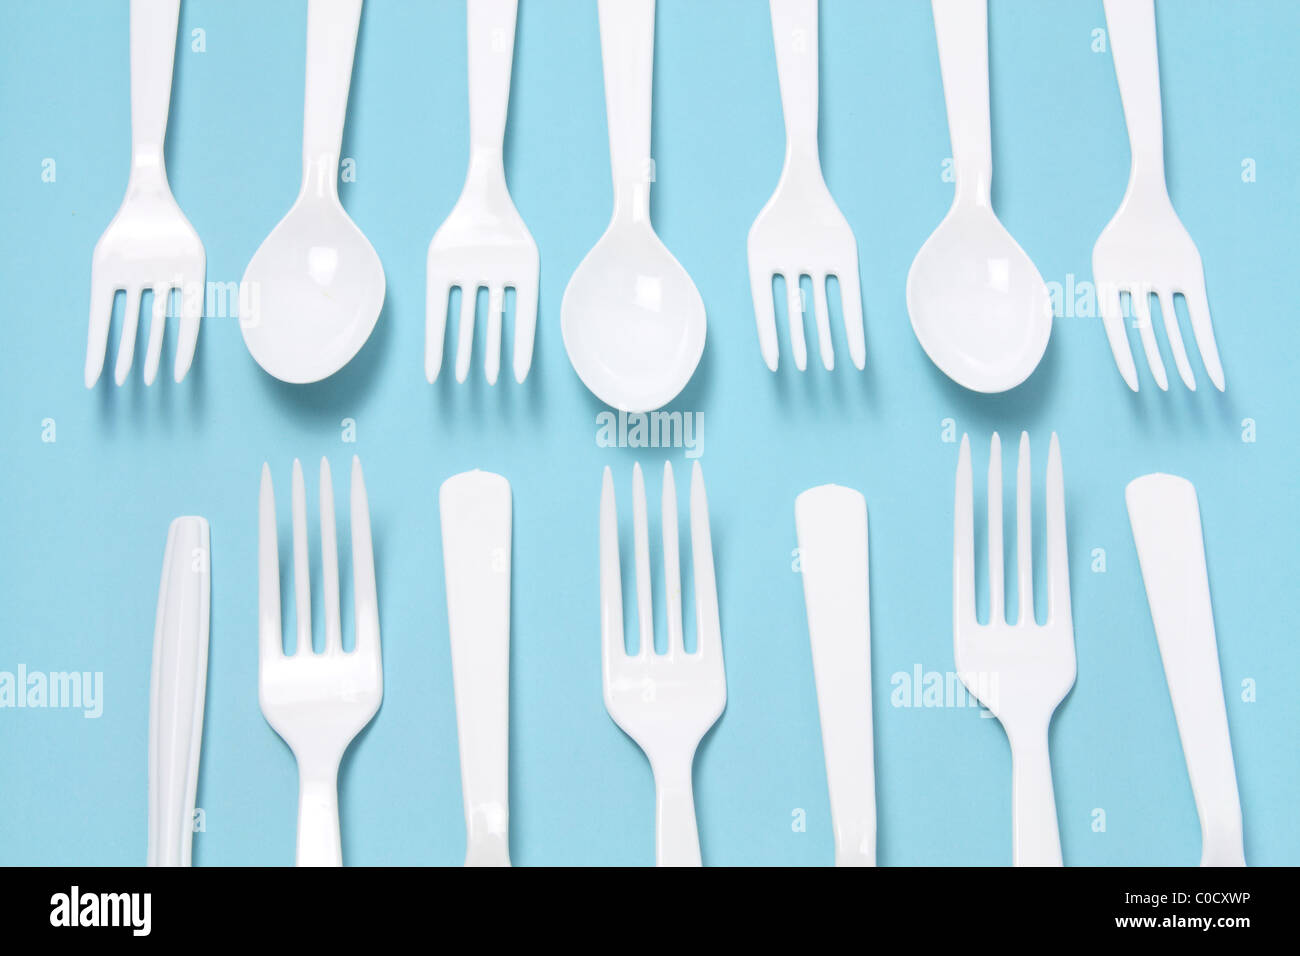 Plastic Forks and Knives - Stock Image